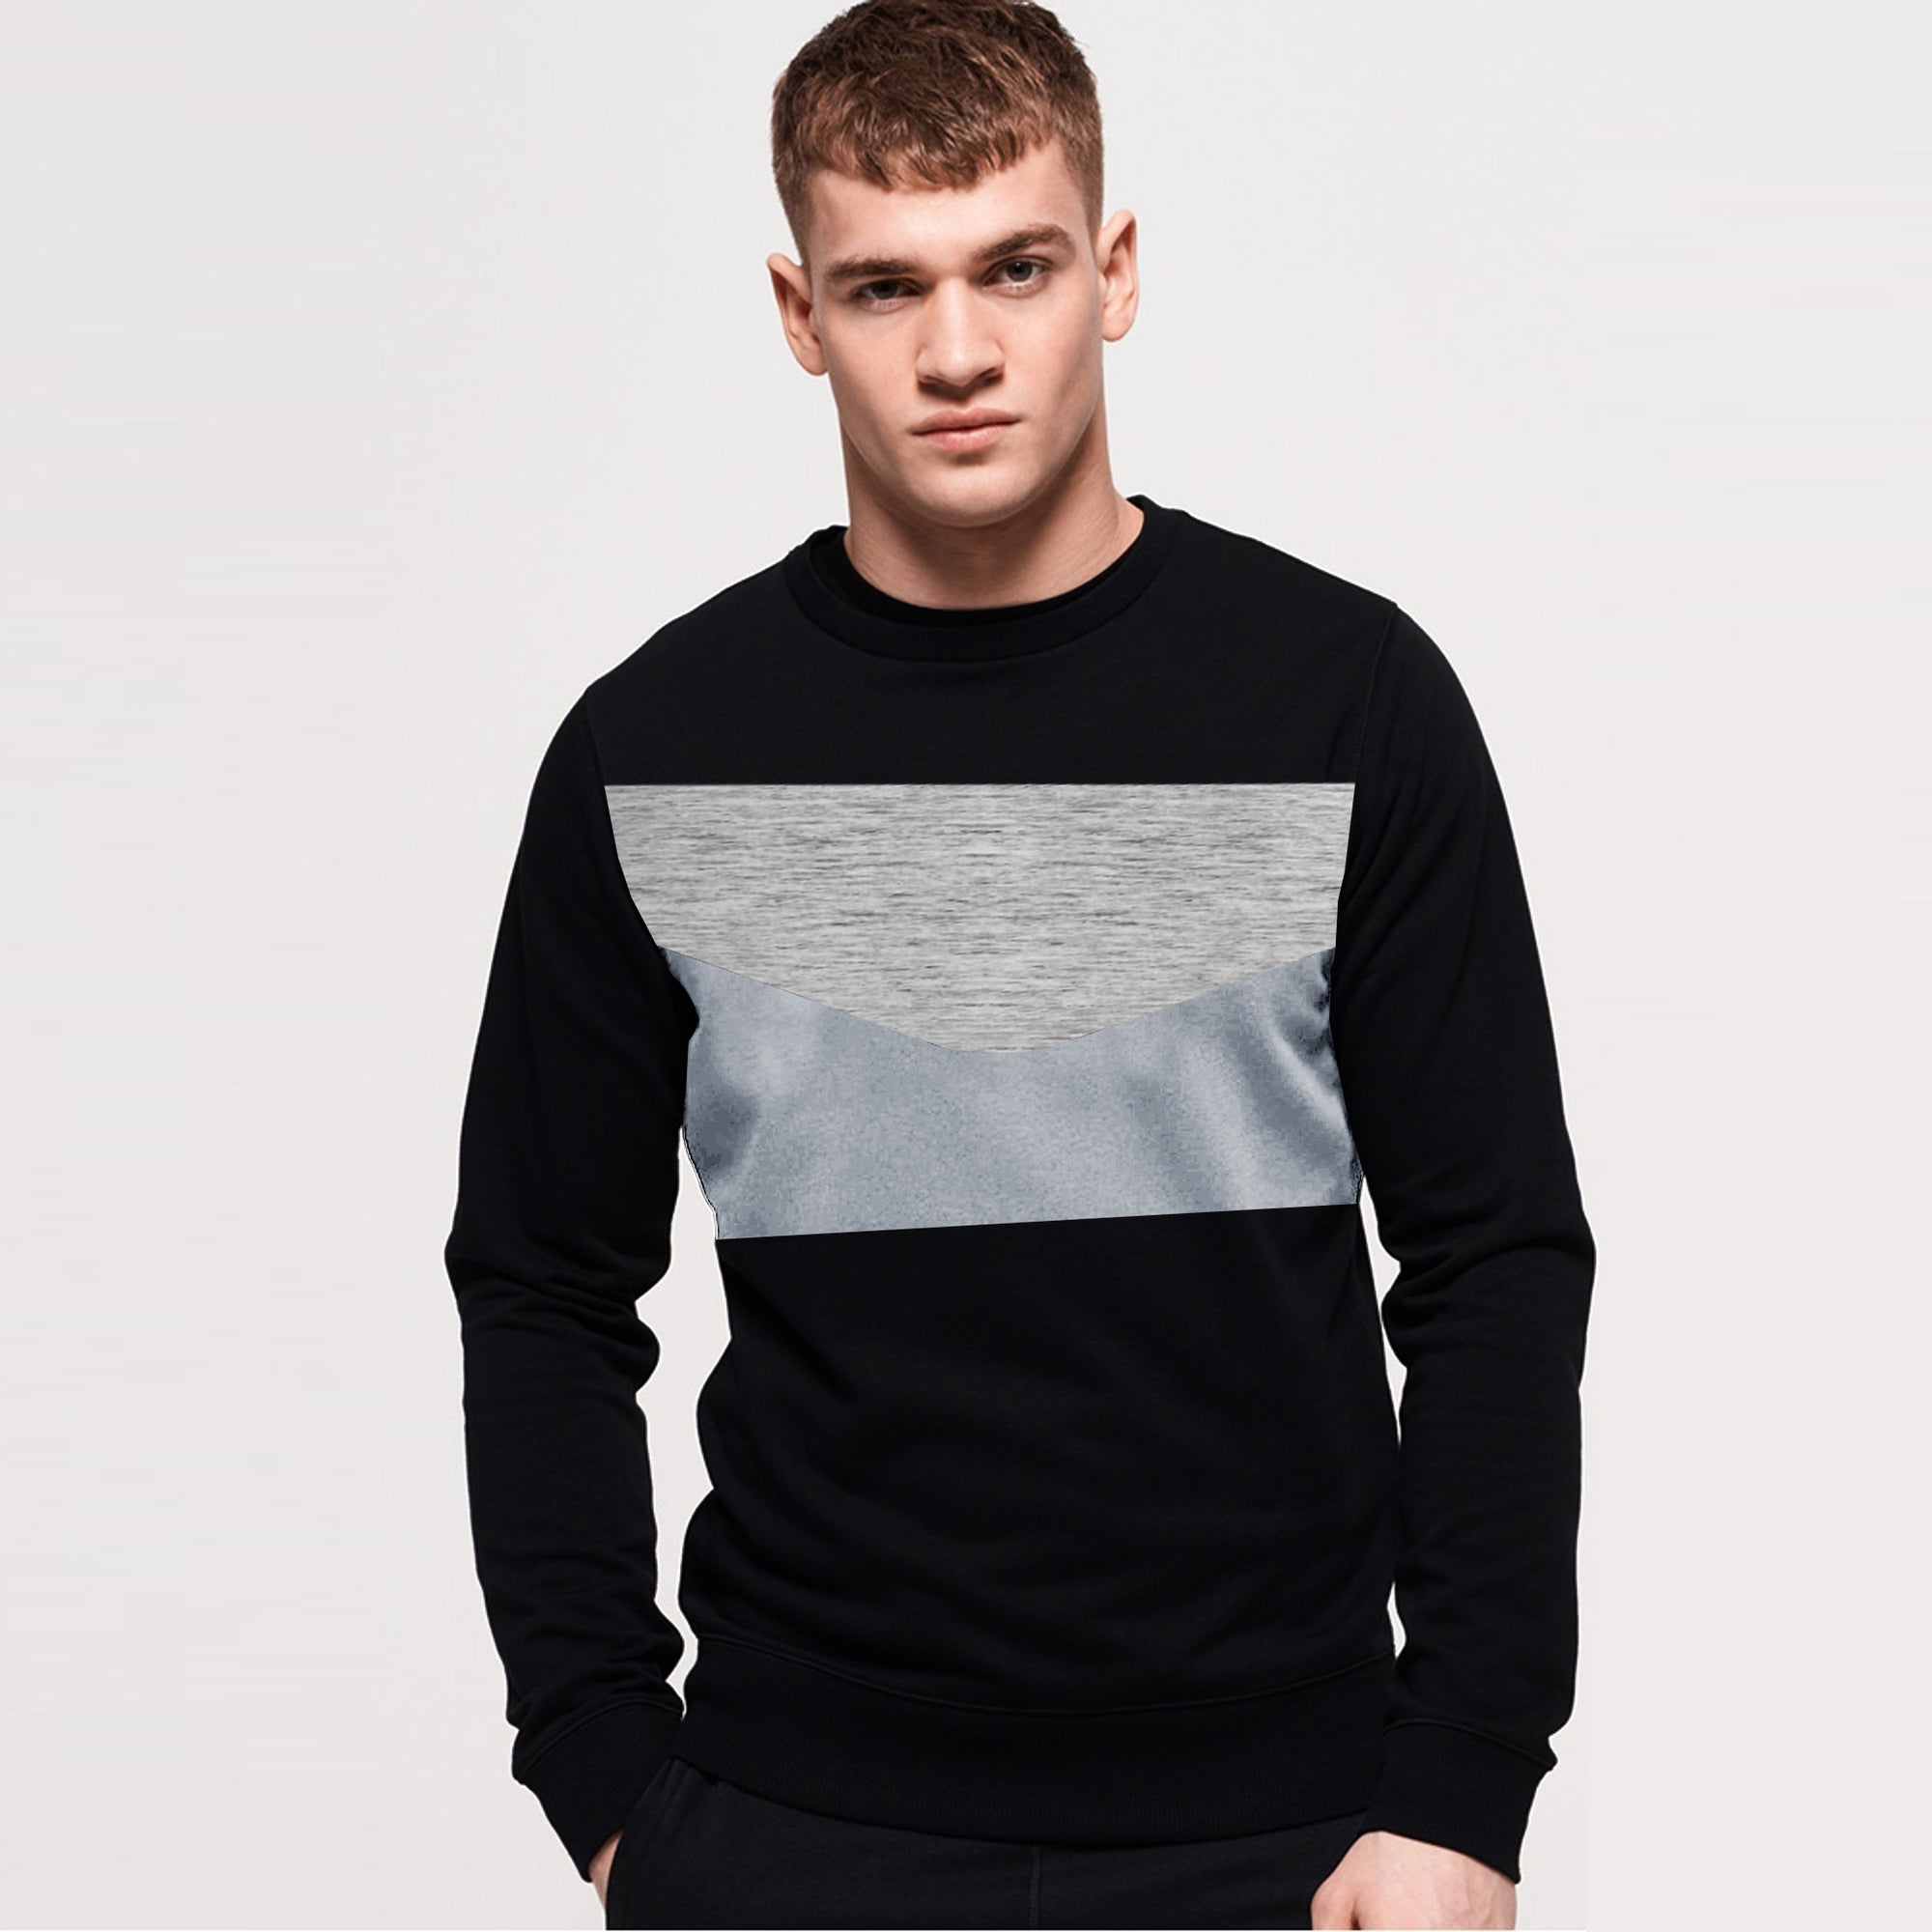 Next Terry Fleece Crew Neck Sweatshirt For Men-Black & Multi Panel-SP1061